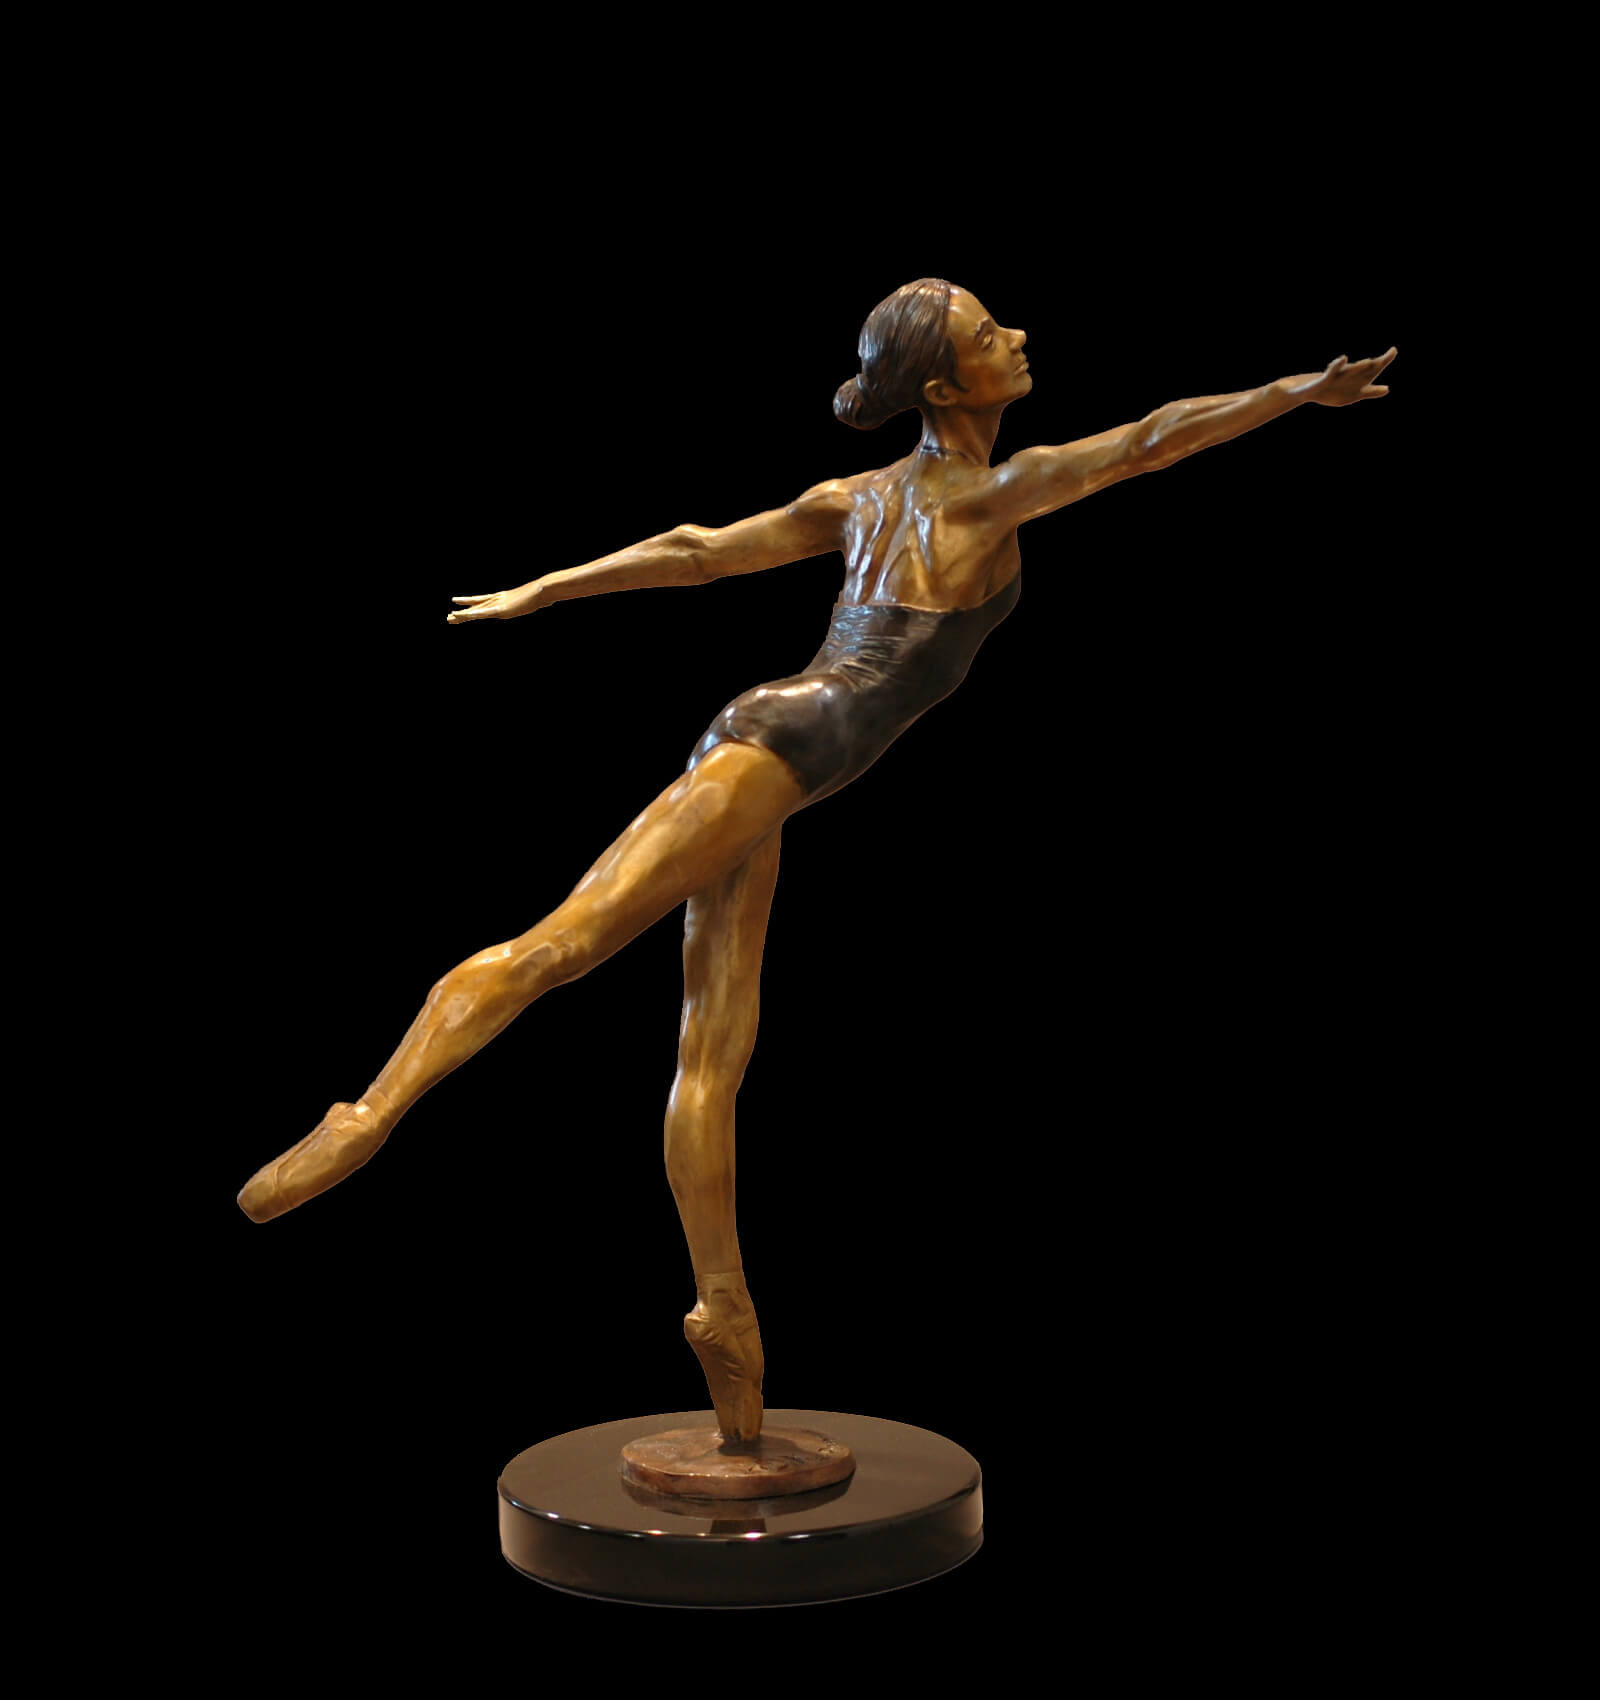 Moment Of Grace >> Moment Of Grace Andrew Devries Figurative Bronze Sculpture